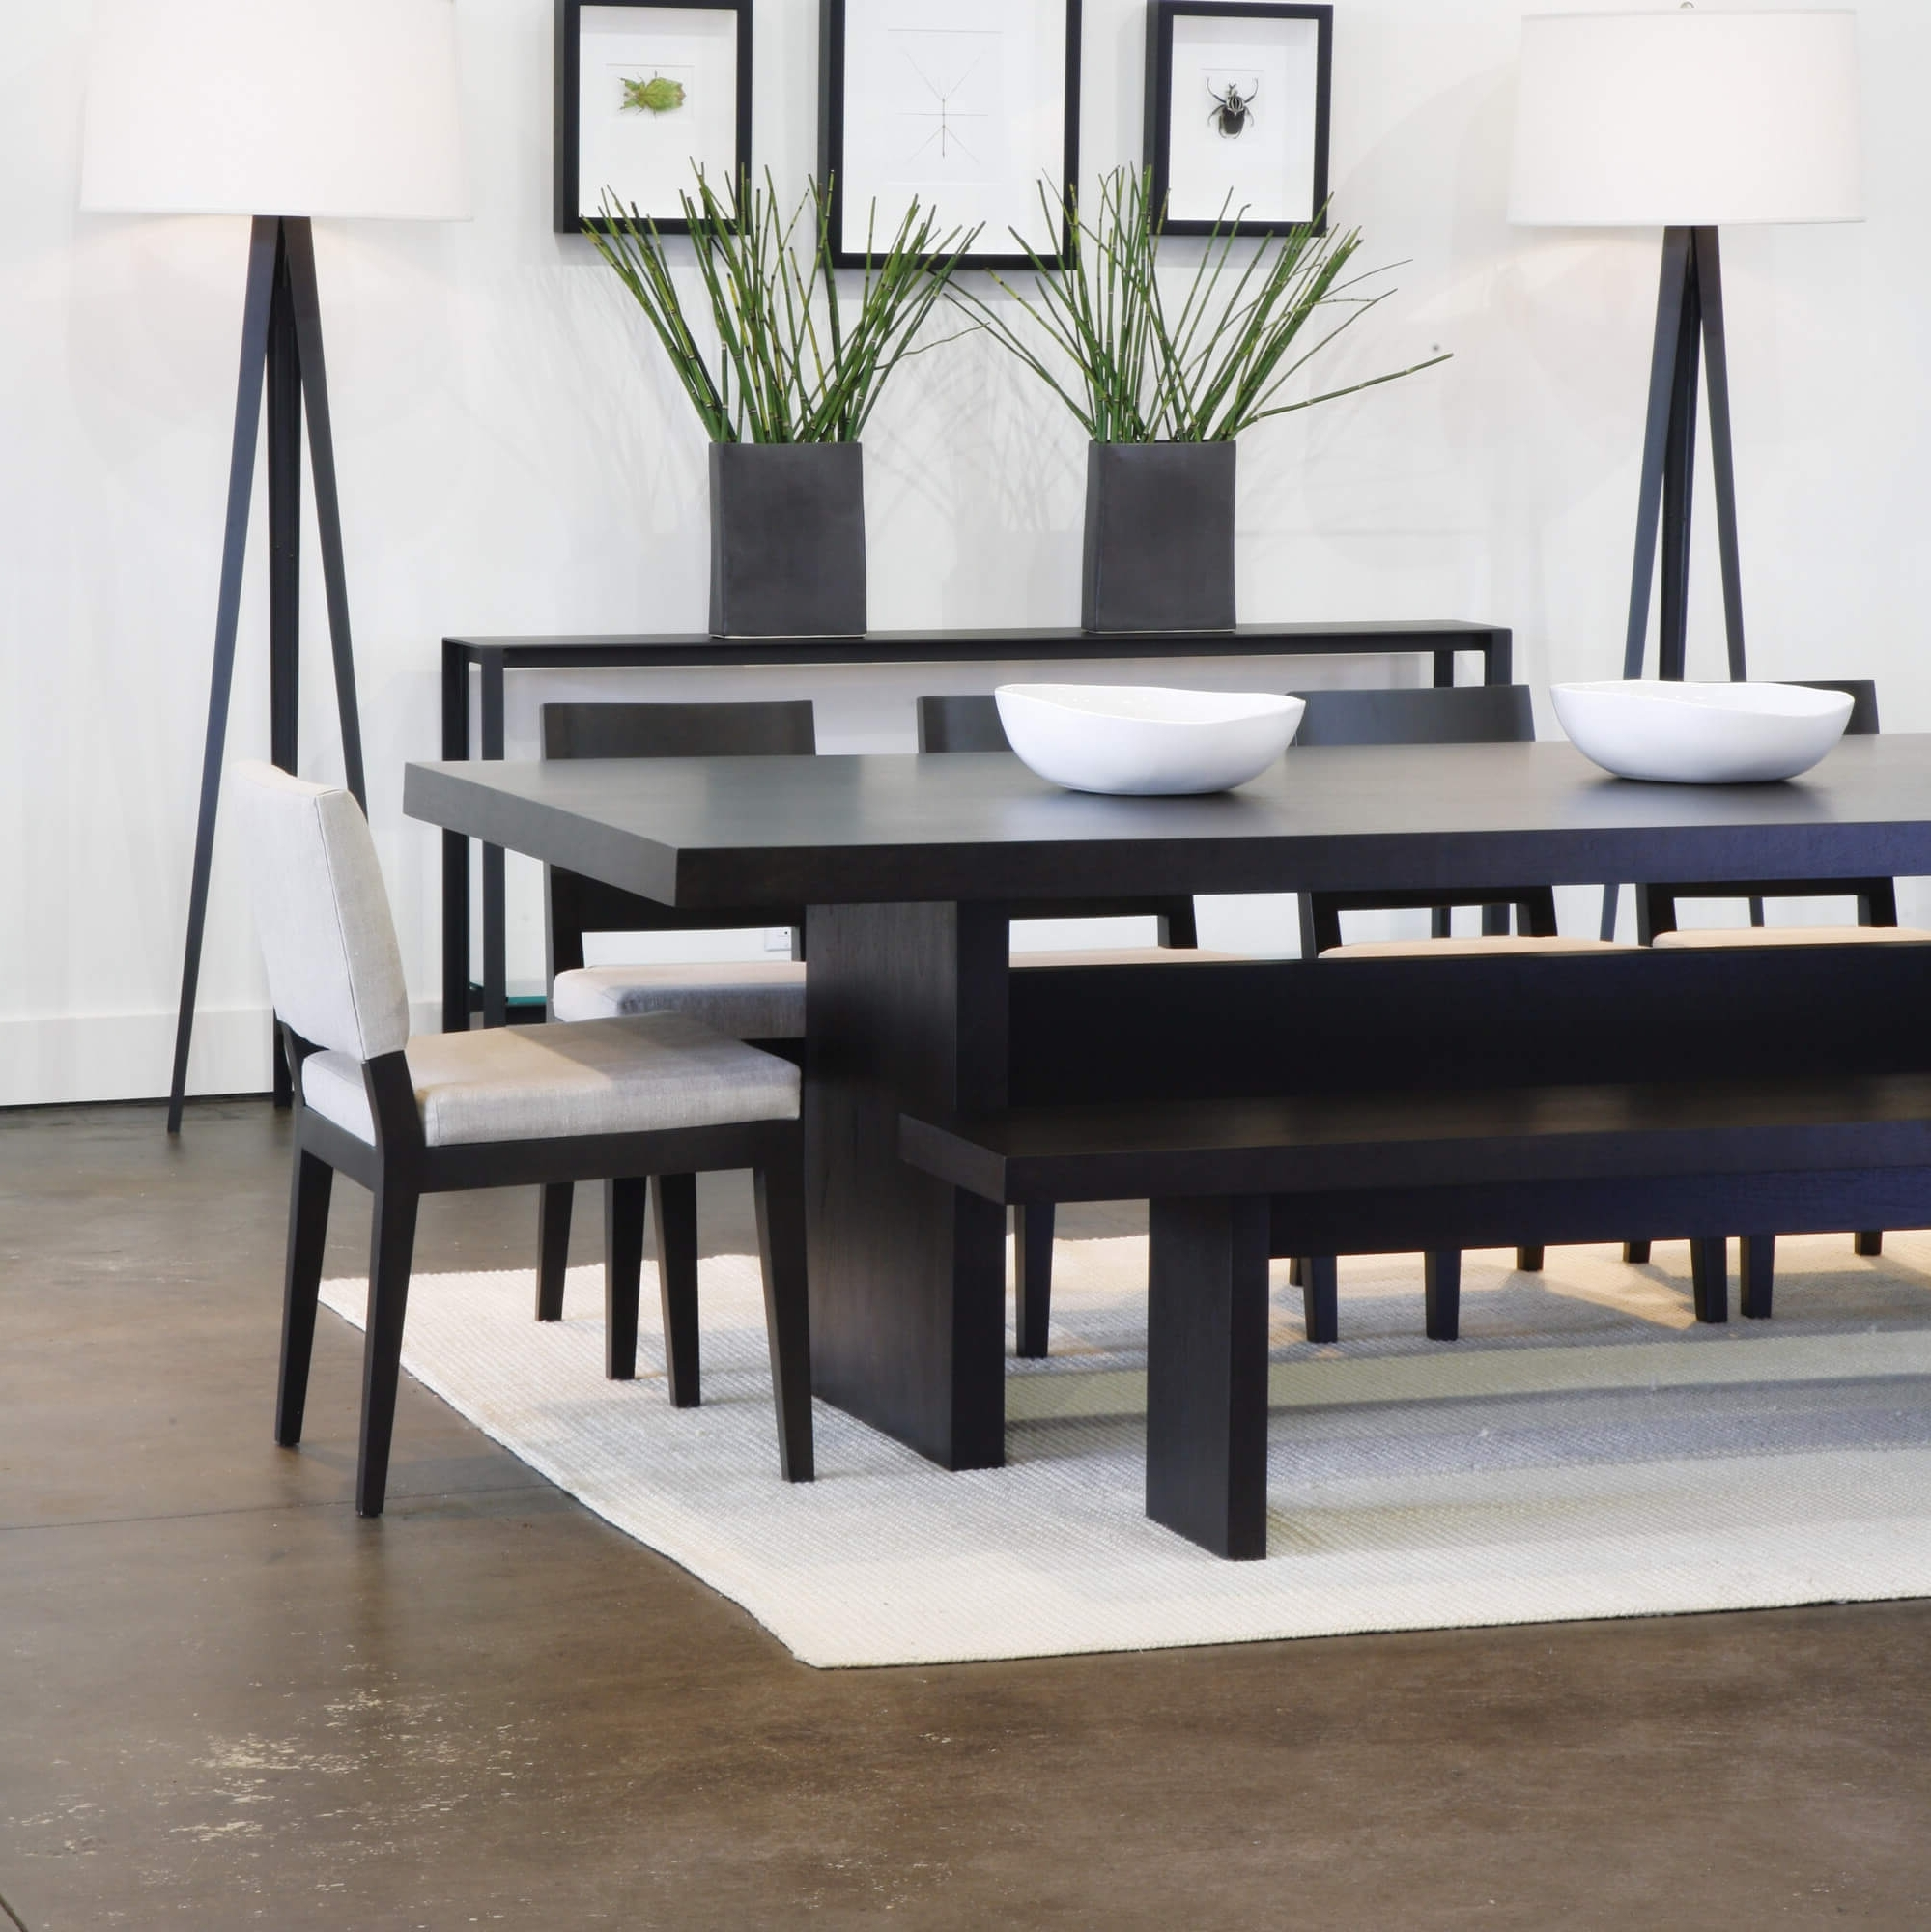 Sleek Dining Tables With Regard To Well Known 26 Dining Room Sets (Big And Small) With Bench Seating (2018) (View 23 of 25)